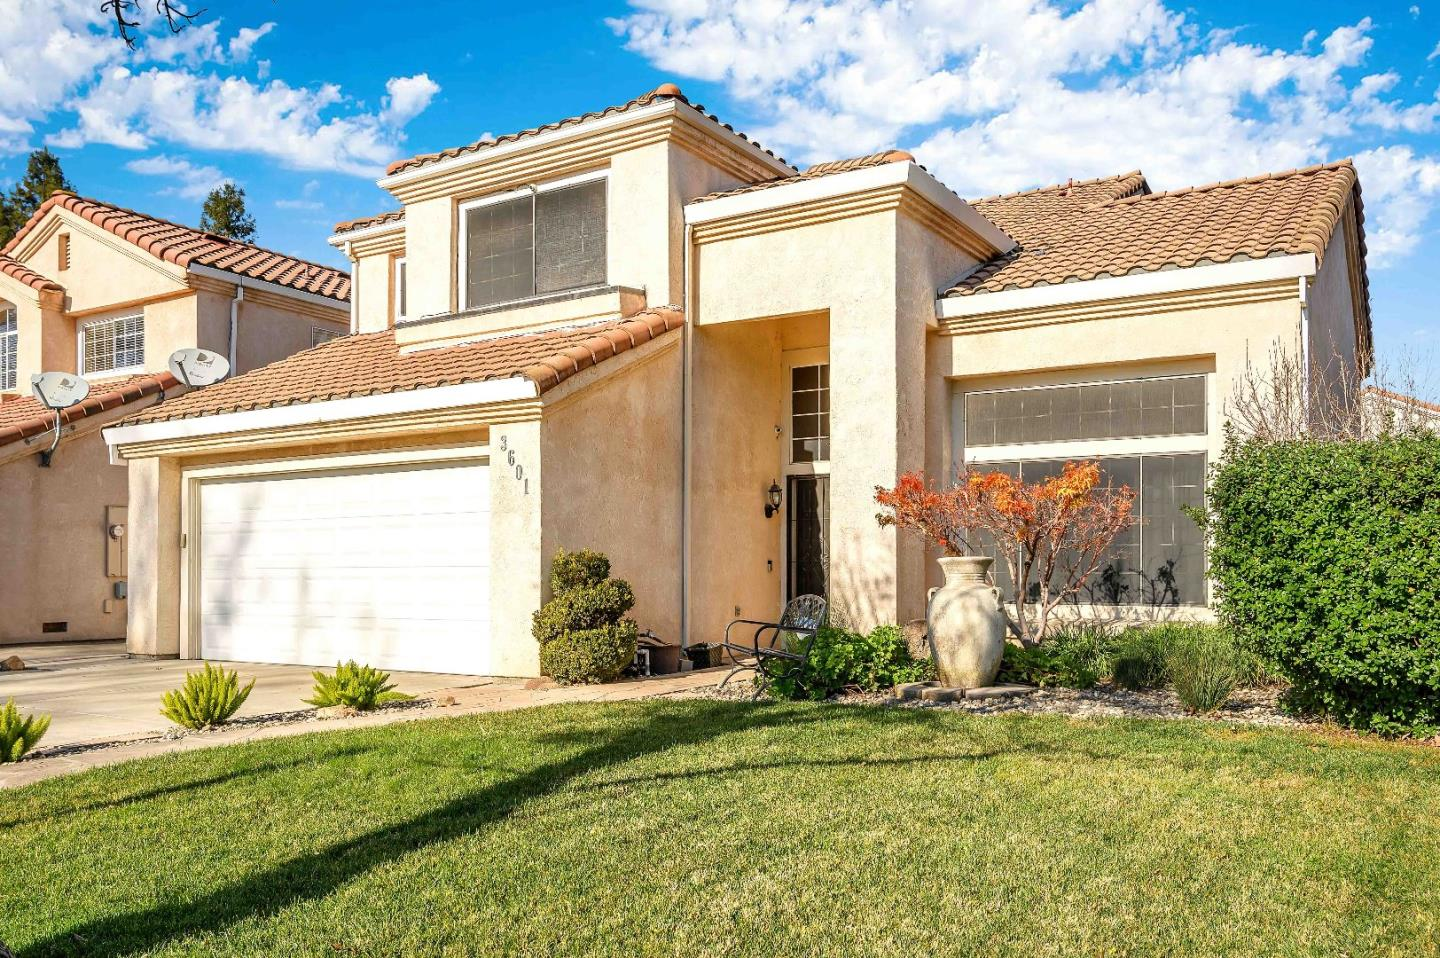 Detail Gallery Image 1 of 12 For 3601 Ardia Ave, Modesto, CA 95357 - 3 Beds | 2/1 Baths